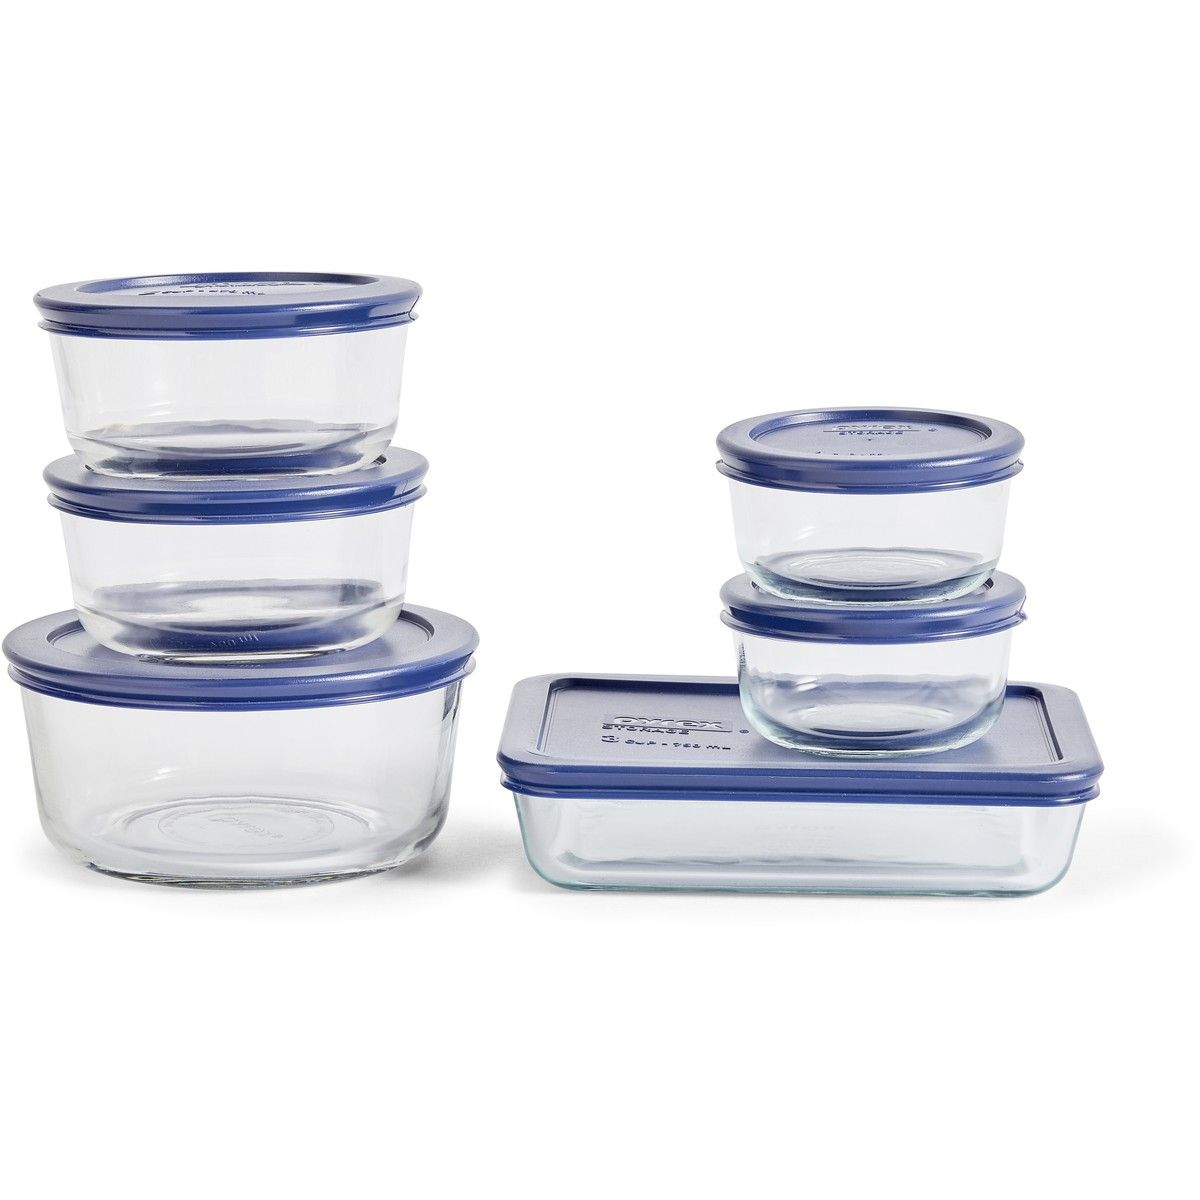 Pyrex Simply Store 12 Piece Set With Images Pyrex Kitchen Food Storage Glass Containers